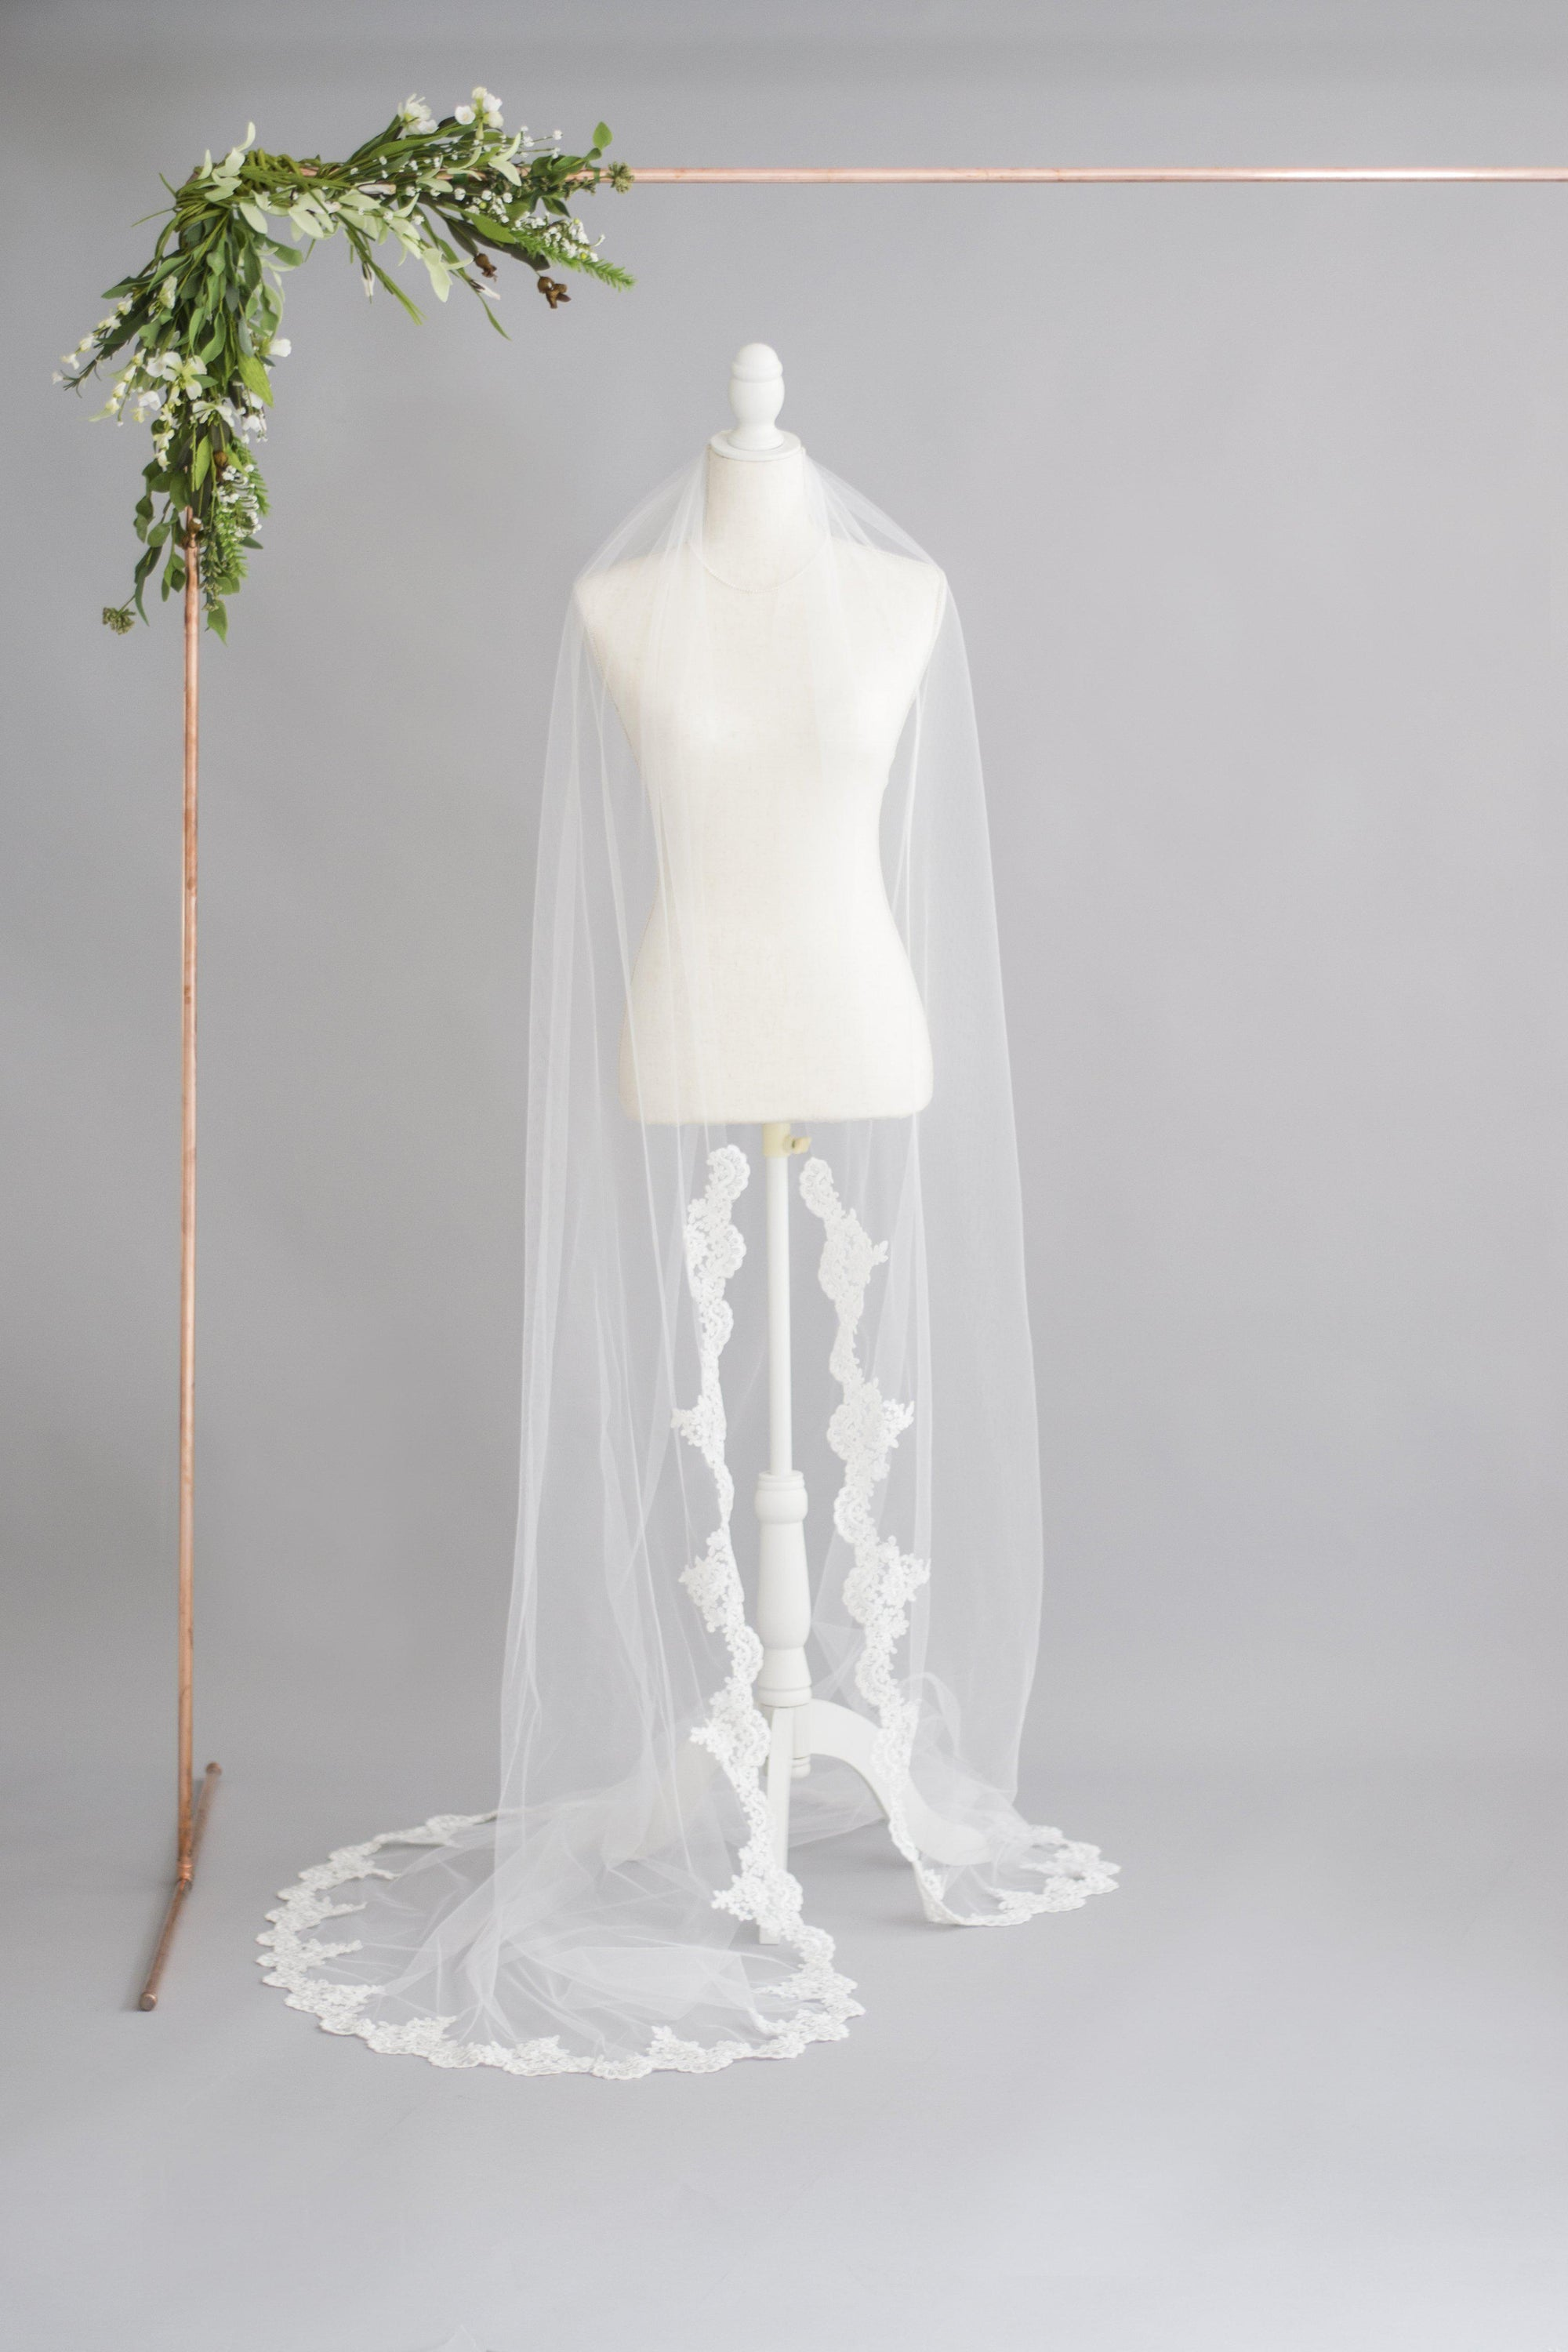 Our New Semi Edged Wedding Veil with Lace Starting Around Wrists - Emma